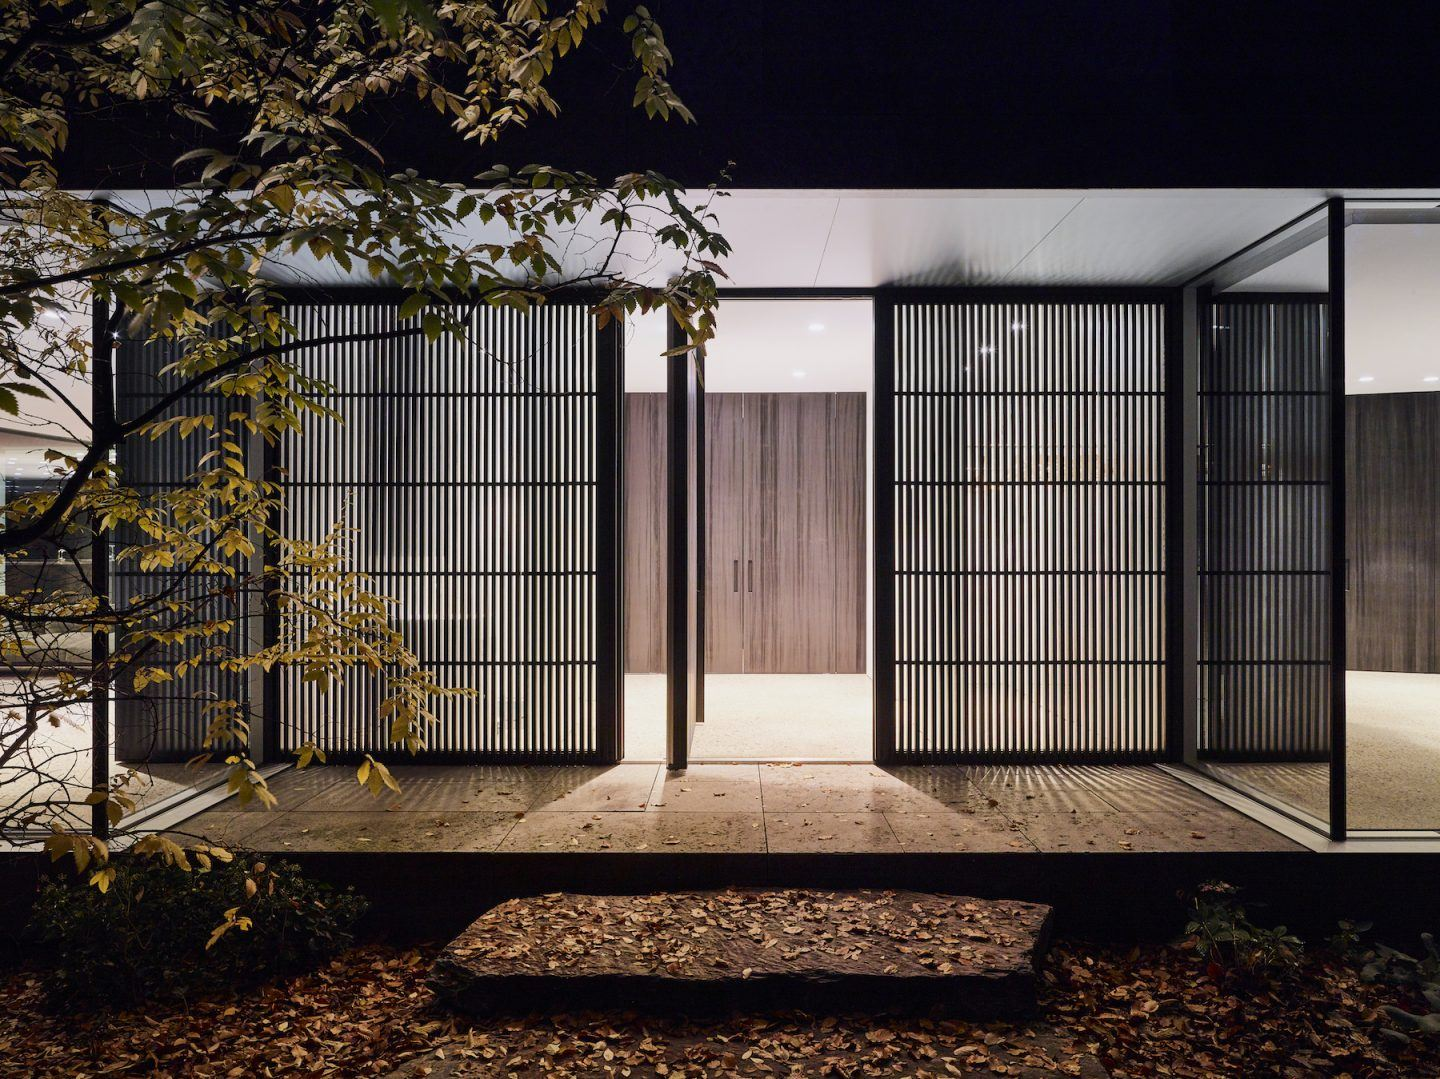 IGNANT-Architecture-DDM-Architecture-House-Bras-10